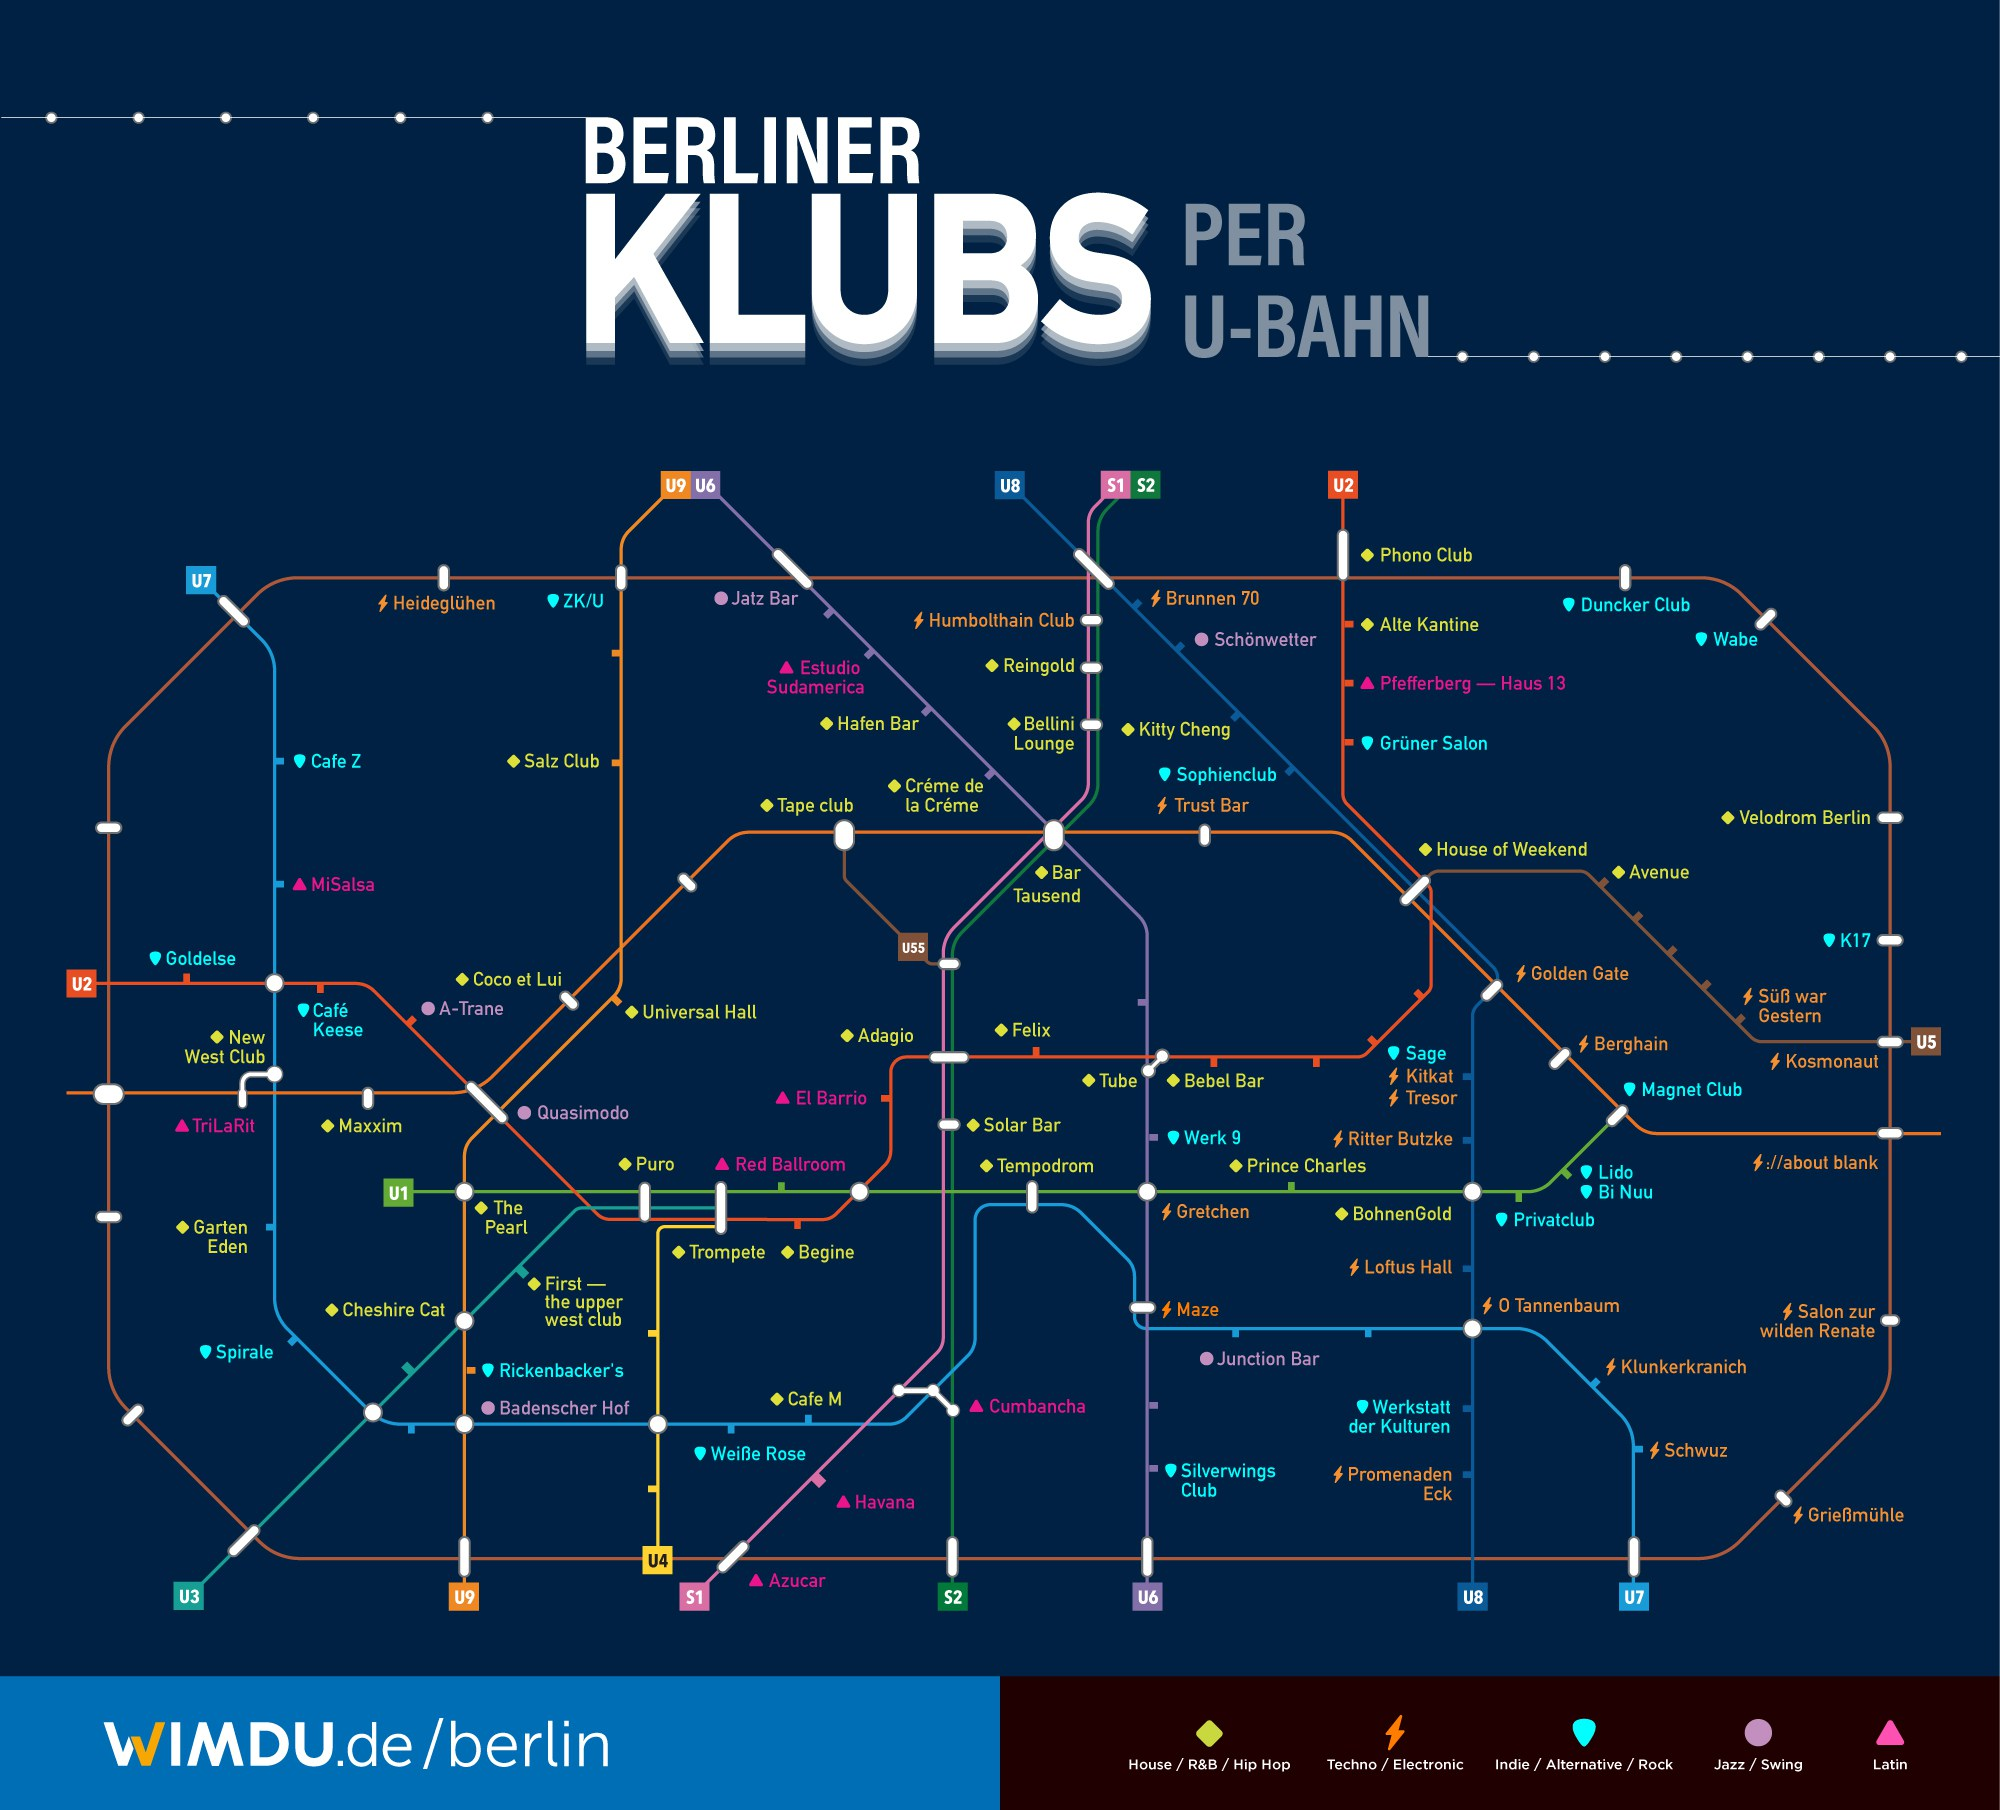 BerlinClubs-UBahn-map-DE-1